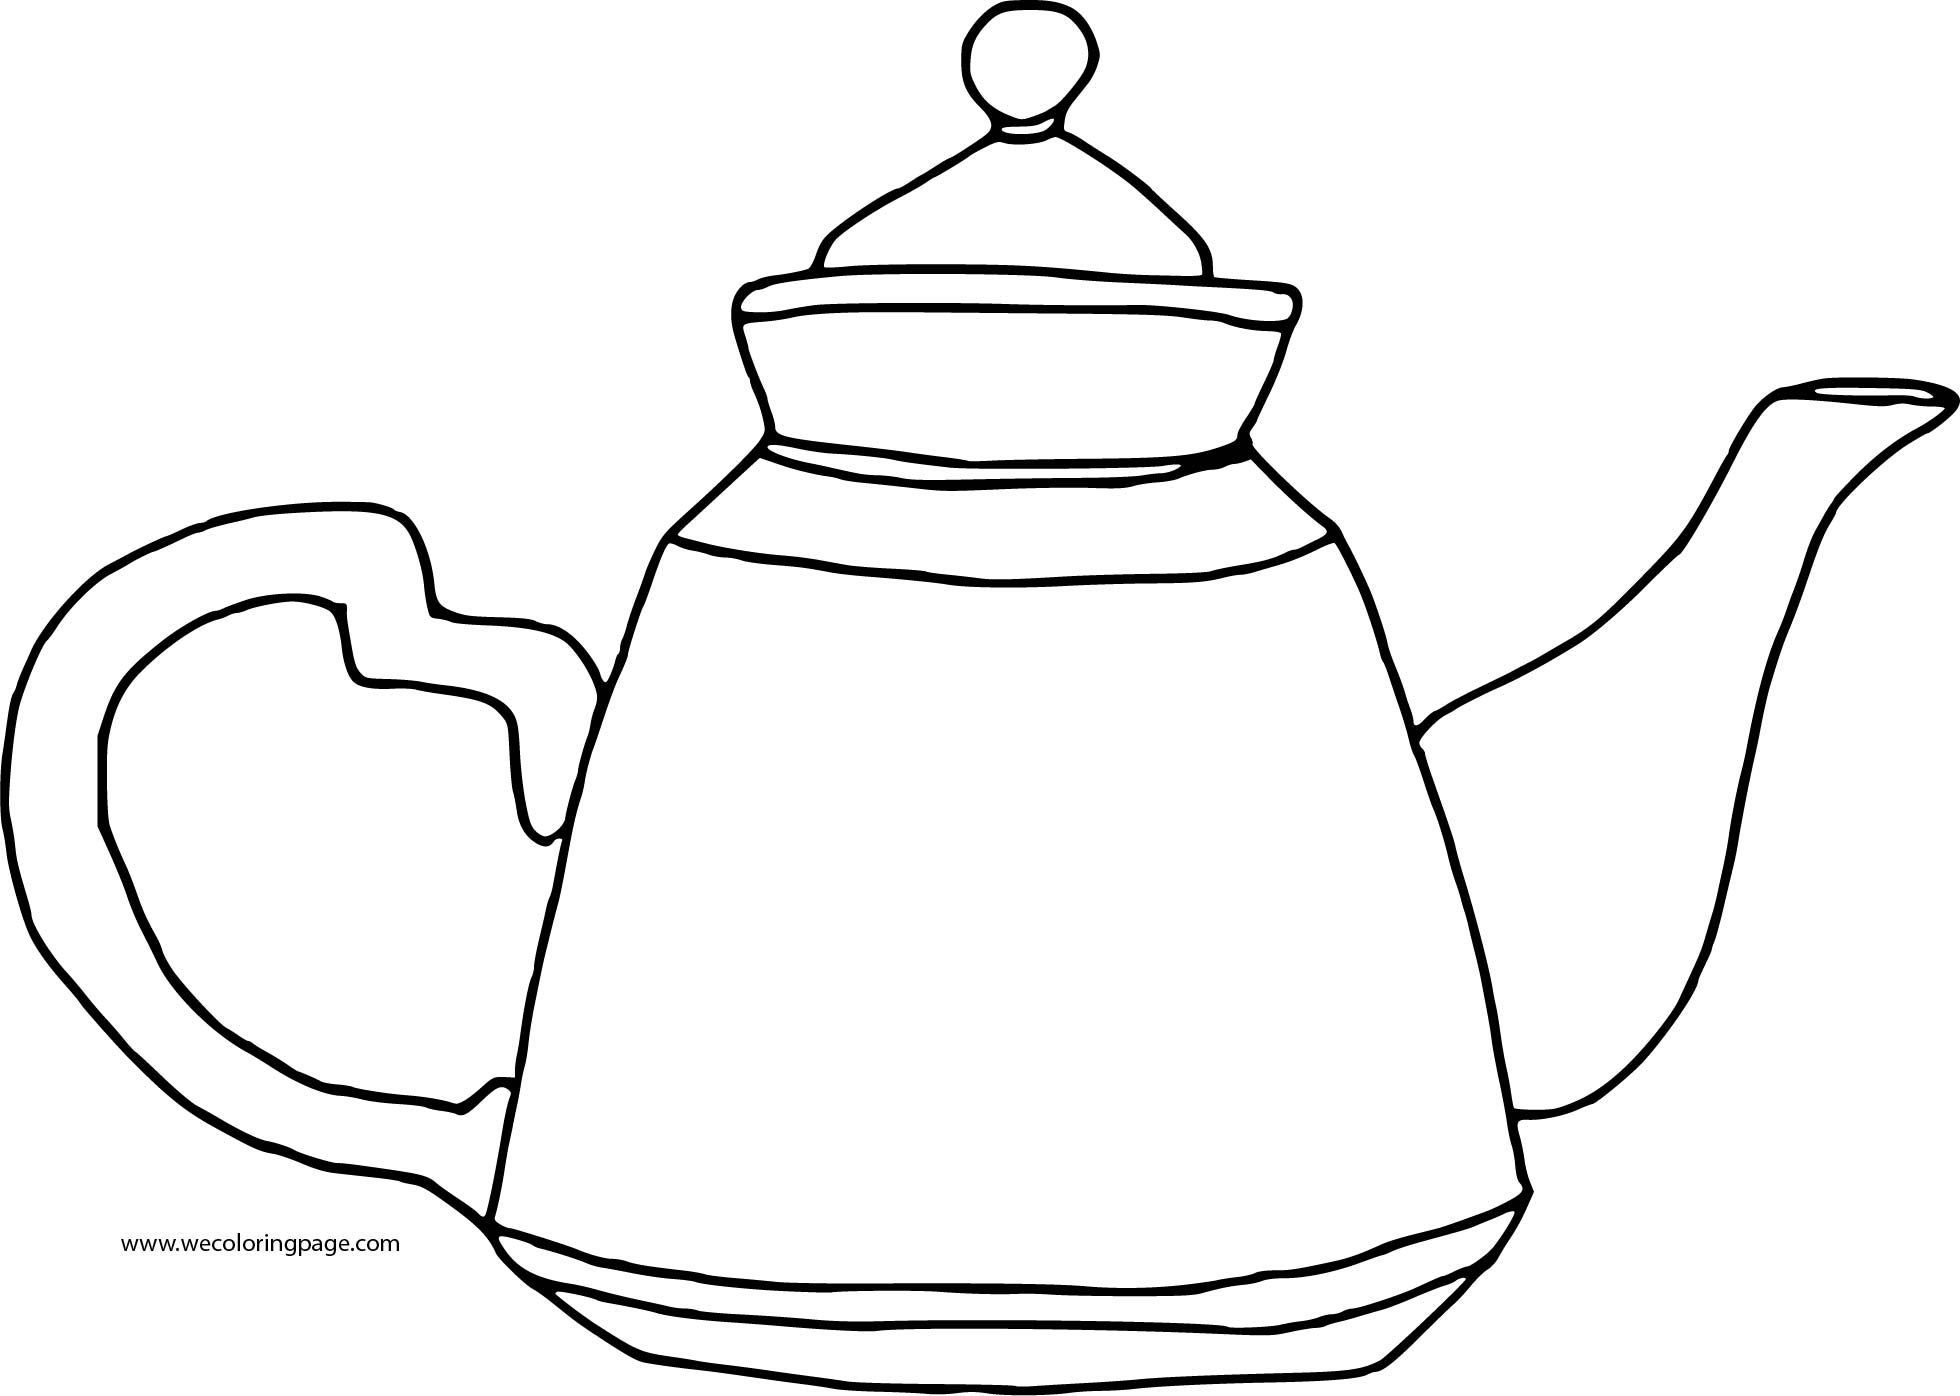 Teapot Basic Coloring Page